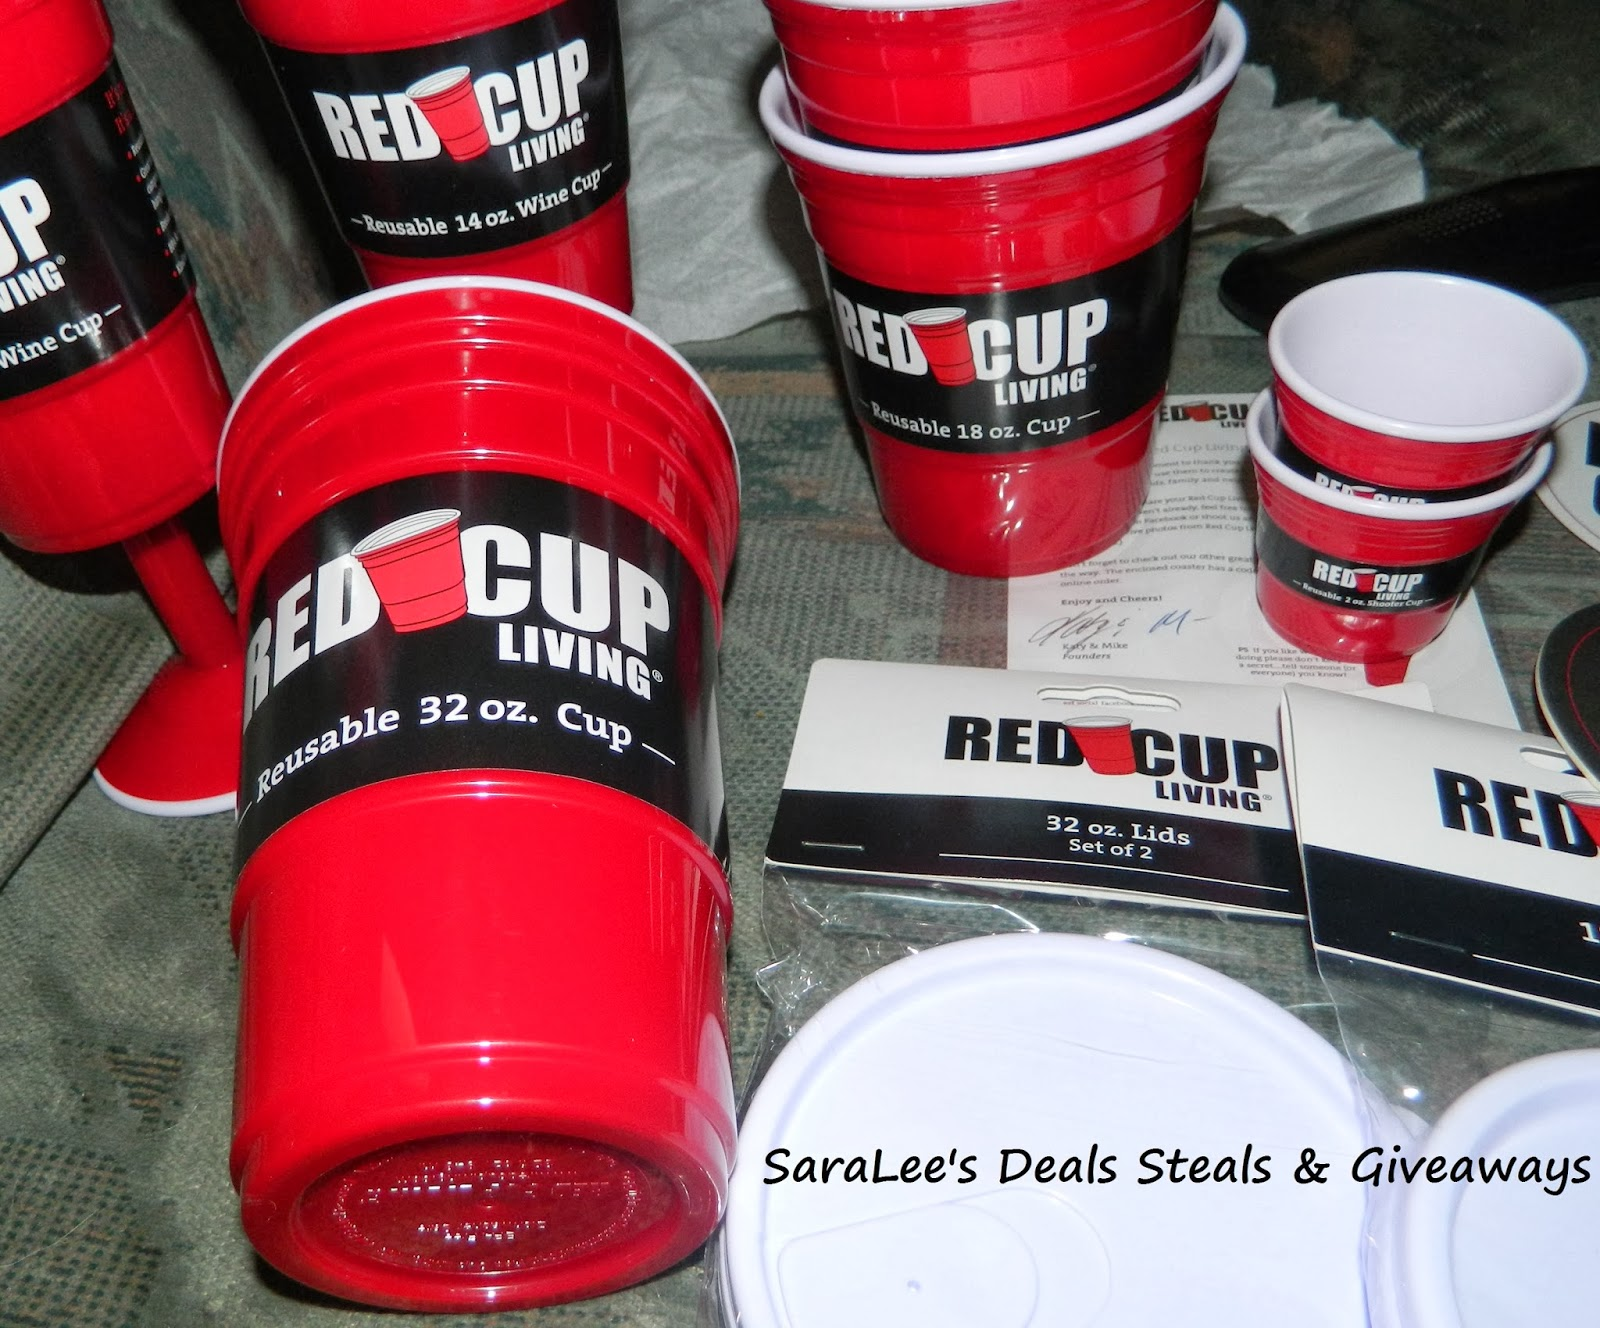 Red Cup Living Giveaway